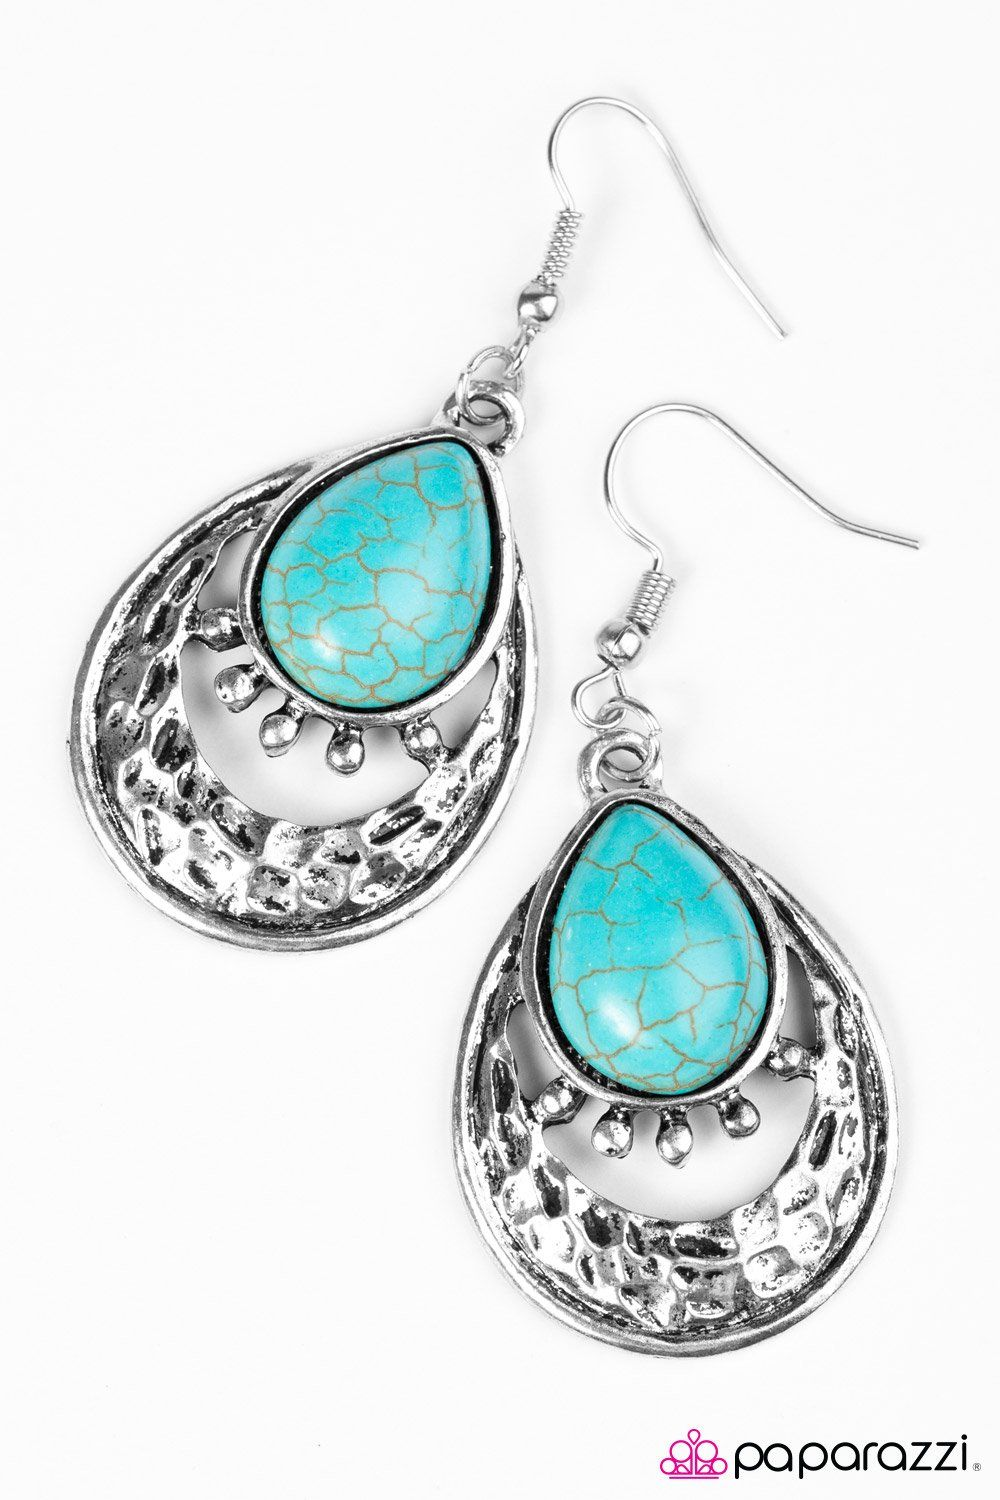 Take Me To The River Earring Blue Lead And Nickel Free Cost 5 00 A Beautiful Turquoise Bead Is Pressed Into Textured Silver Frame For Colorful